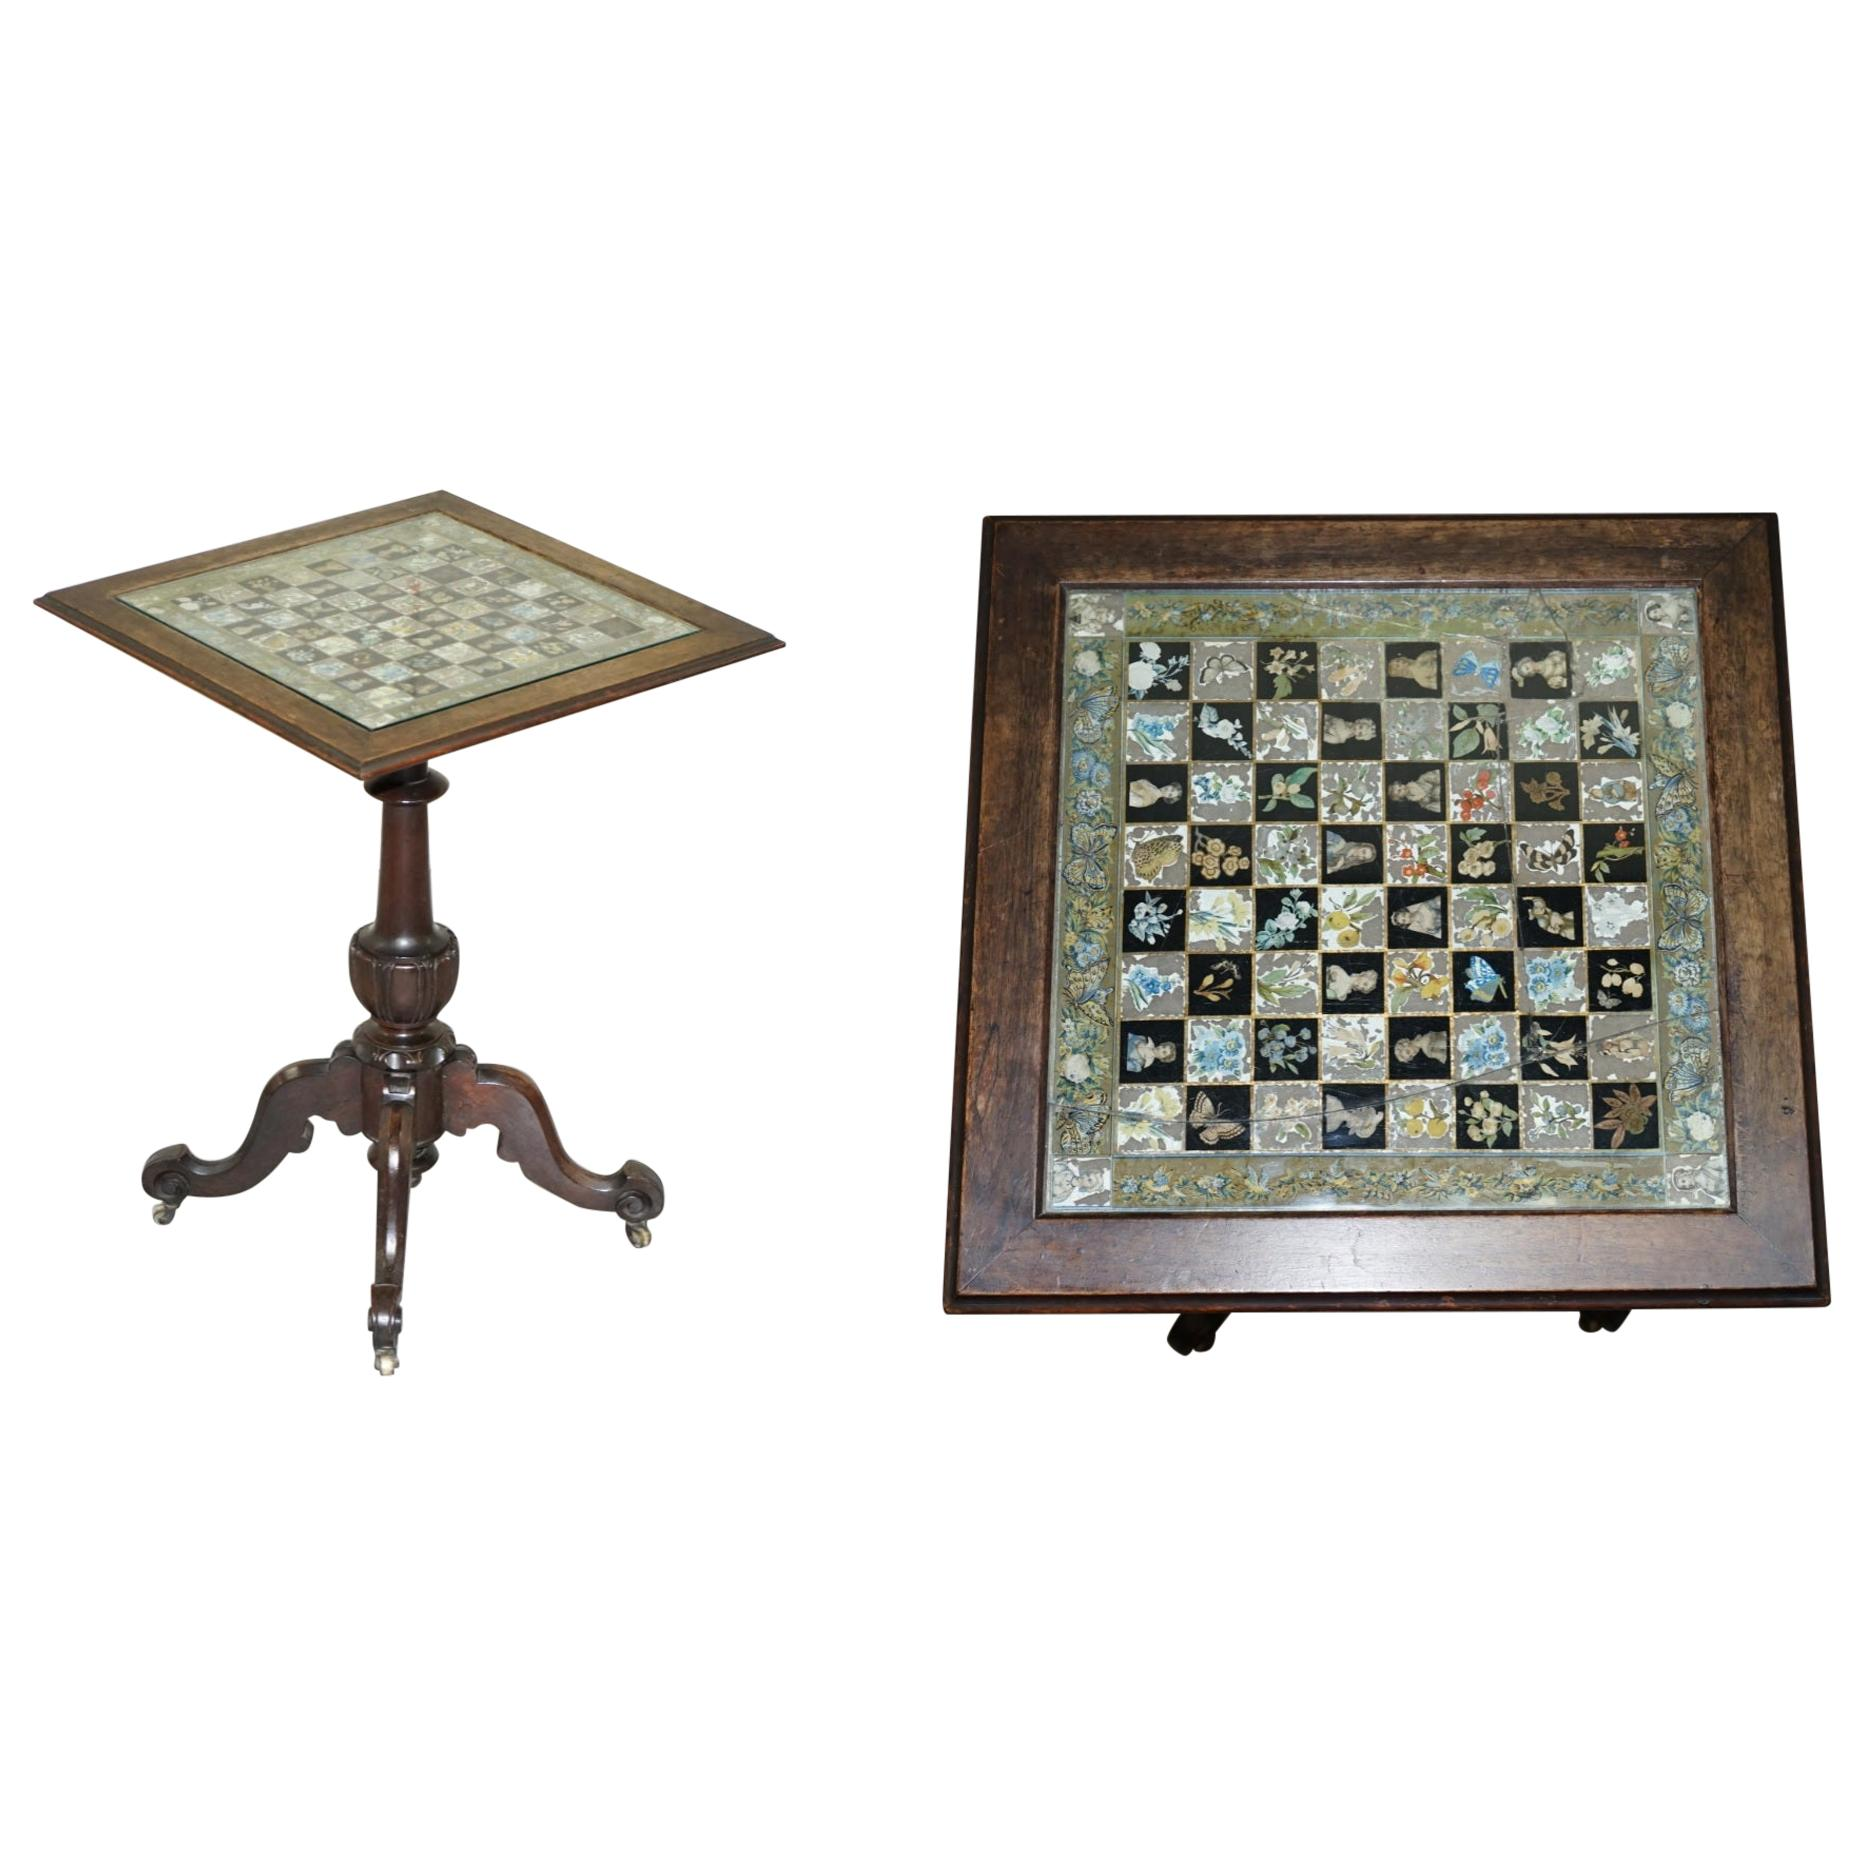 Rare Victorian Hand Carved Chess Table with Decoupage Chess Board Very Ornate